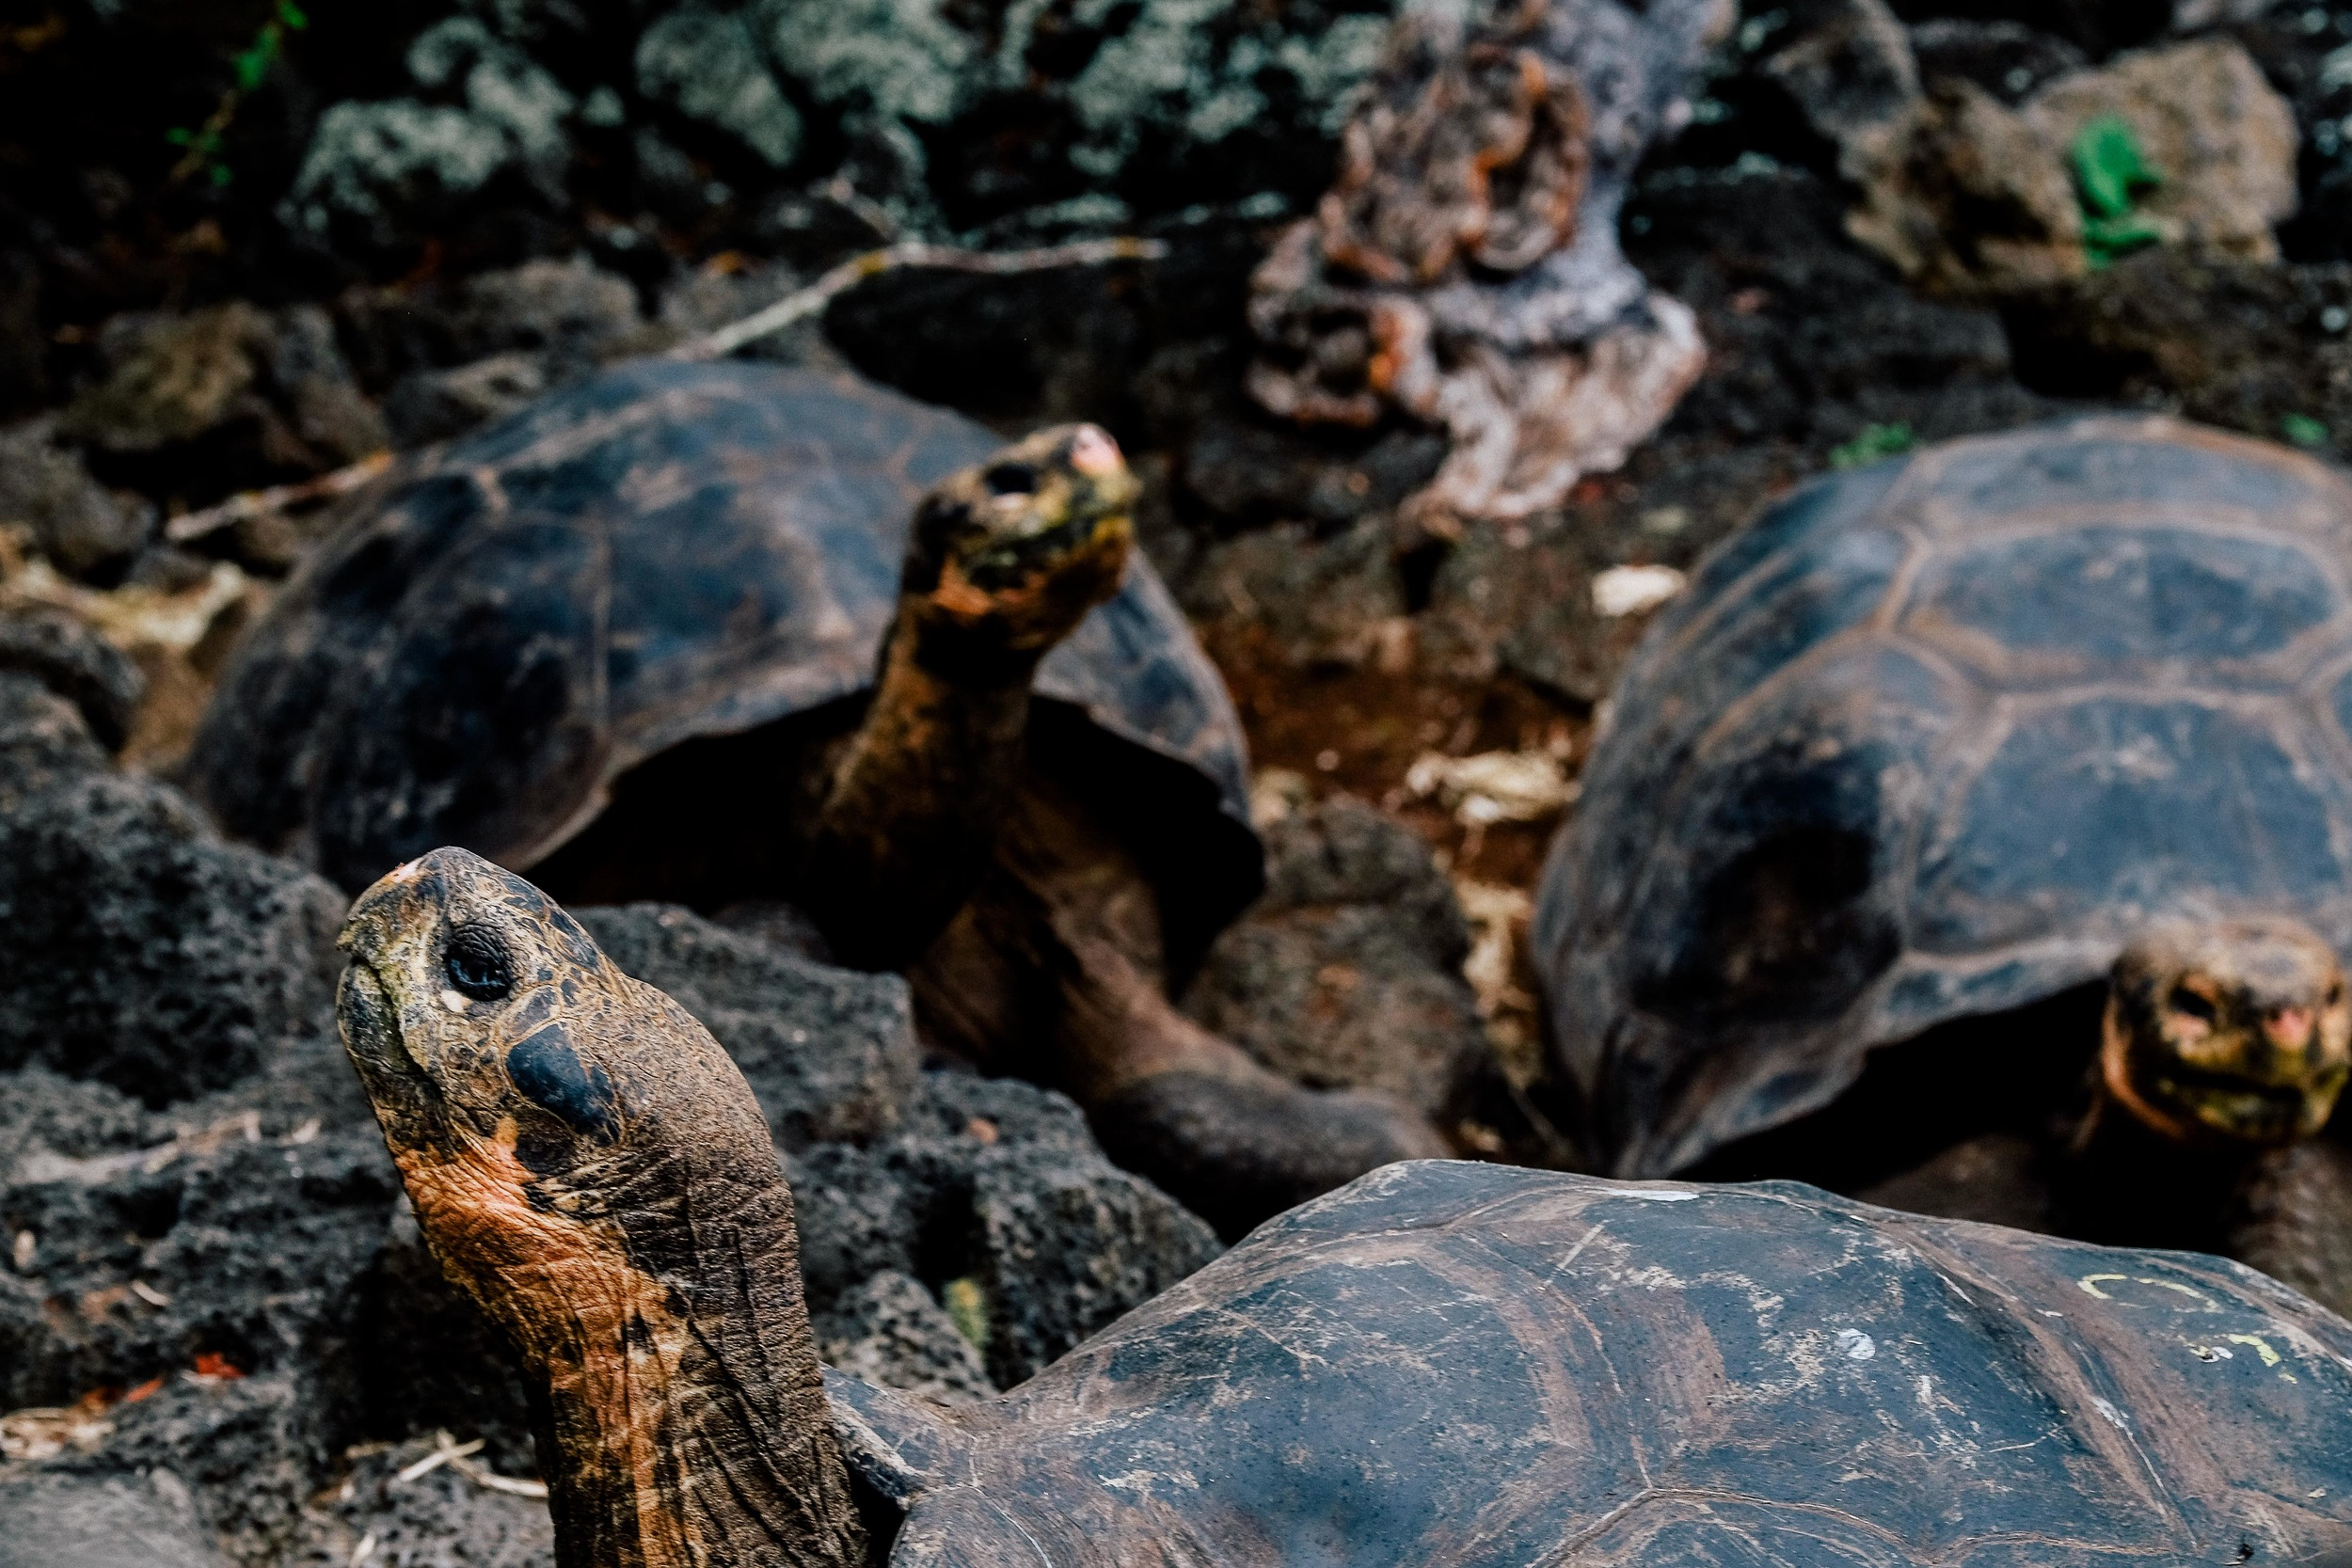 The giant Galapagos tortoises are gigantic and they are incredibly impressive up close!